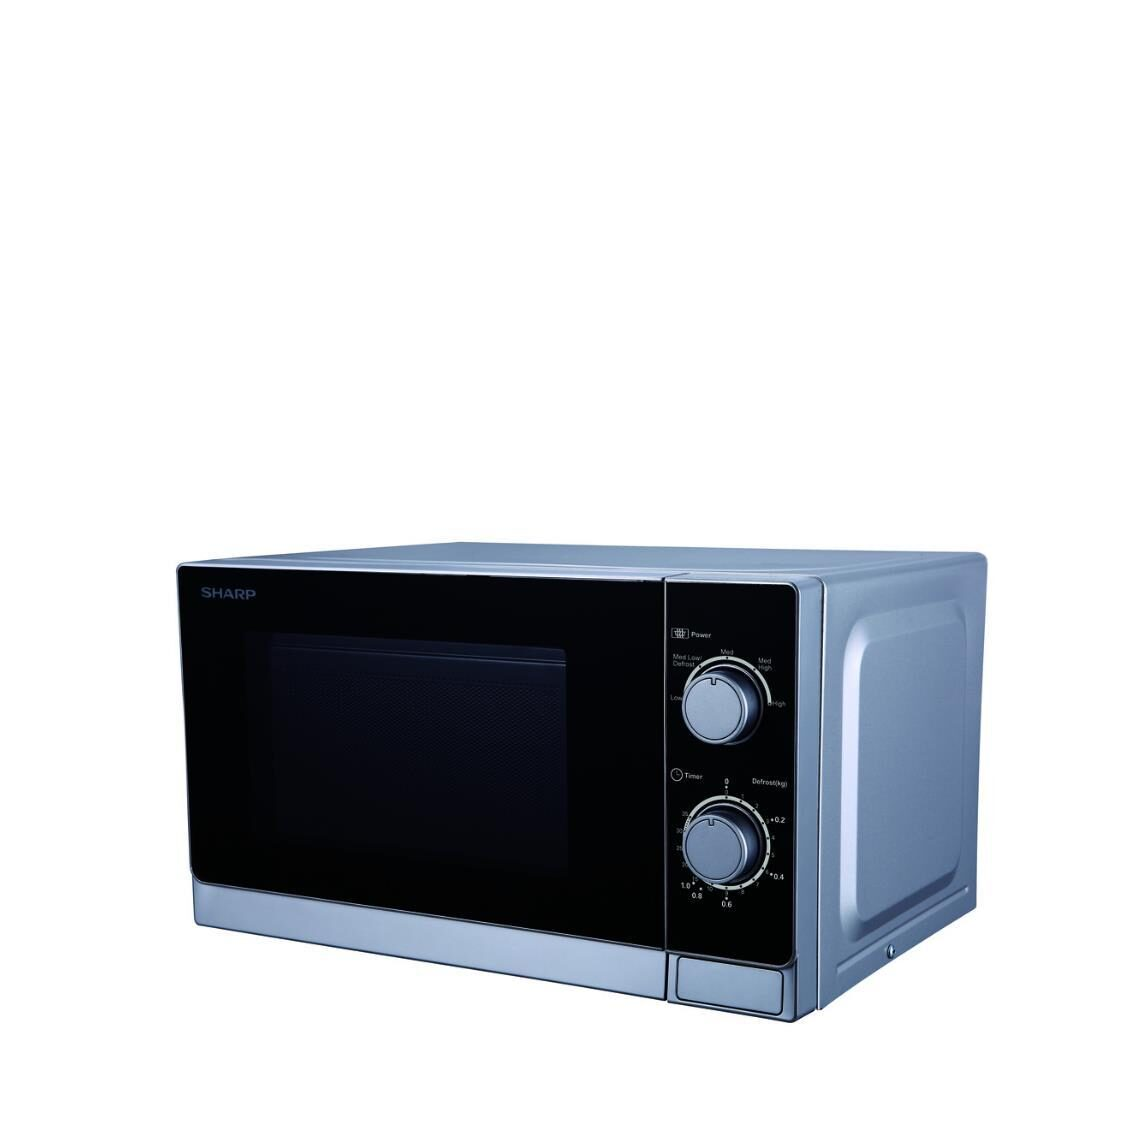 sharp microwave oven r 20a